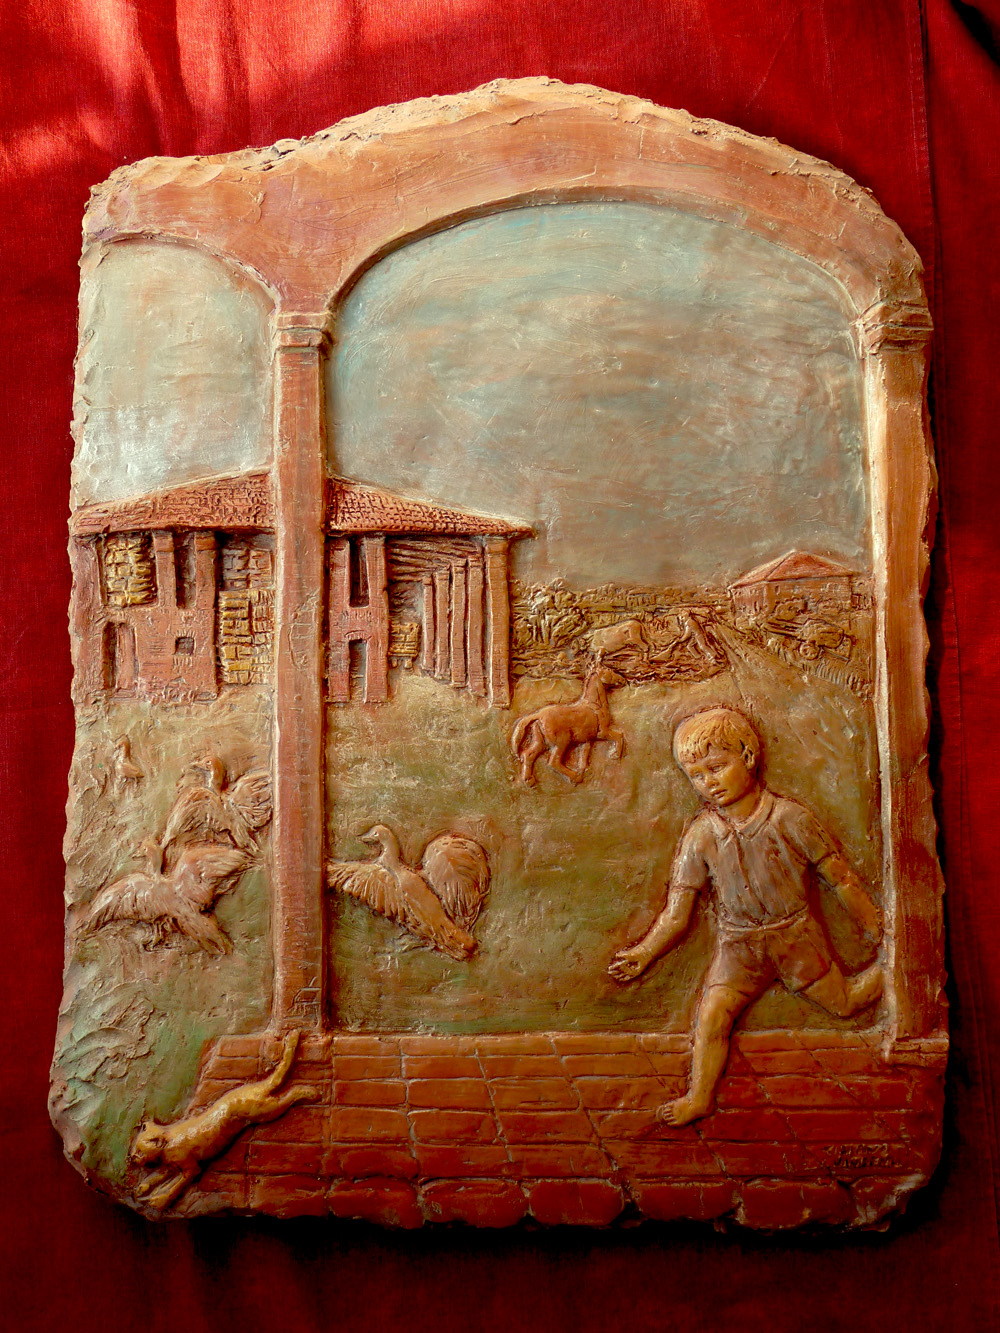 pannello decorativo in terracotta